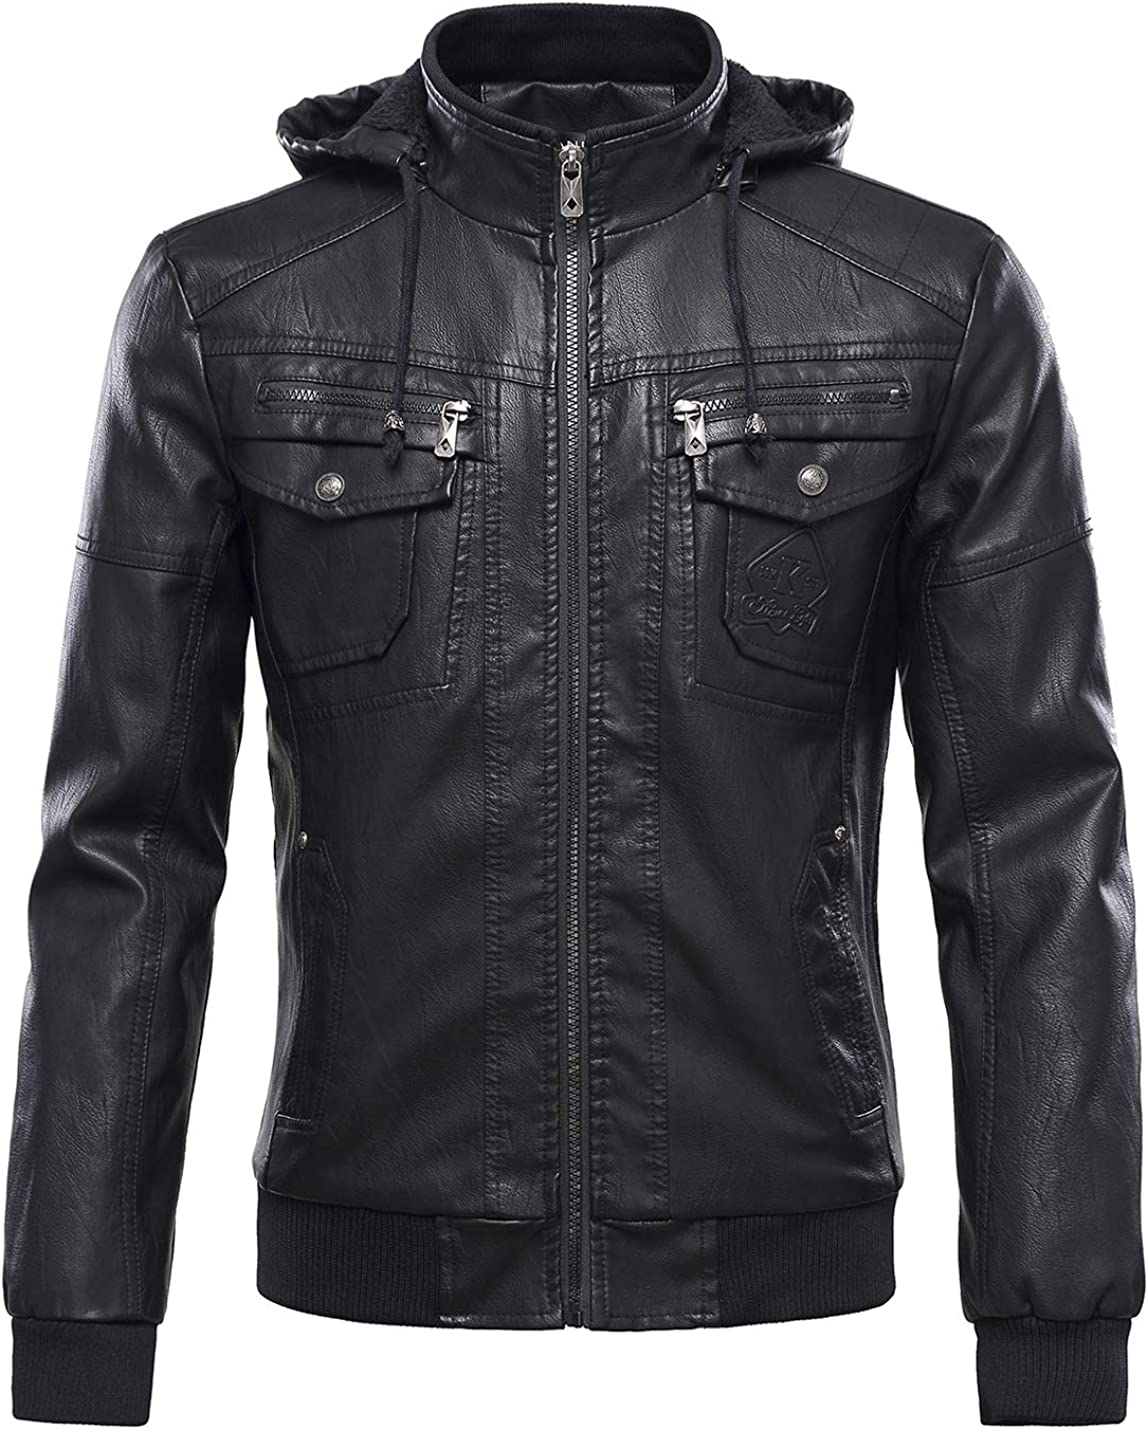 Tanming Men's Fleece Lined Motorcycle PU Faux Leather Jacket with Removable Hood